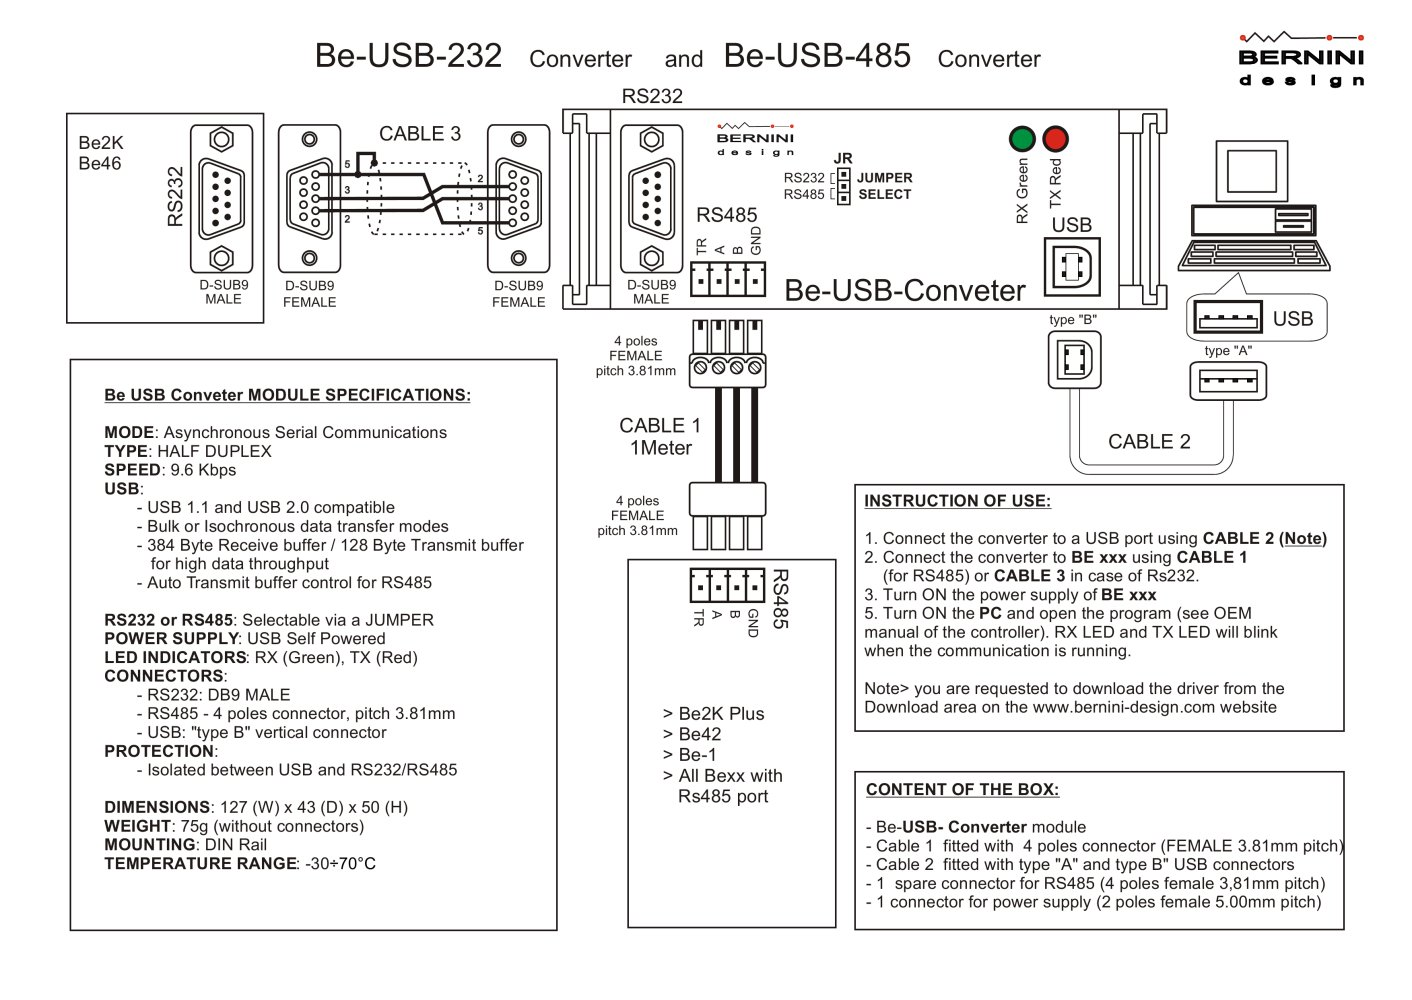 Beautiful Rs232 Cable Wiring Diagram Frieze - Electrical and Wiring on rs232 circuit diagram, telephone jack wiring color code diagram, rs232 cable pinout, rs485 to rs232 wiring diagram, rs232 connector diagram, rs232 connection diagram, rs232 serial adapter to usb converter diagram, rs232 wire, 9-pin connector wiring diagram, rs232 to rj45 wiring-diagram, case wiring diagram, software wiring diagram, rs232 schematic, null modem cable diagram, rs232 serial cable, data cable diagram, rs232 cable specifications, 4 wire phone jack wiring diagram, rs232 cable connector, rs232 pinout diagram,